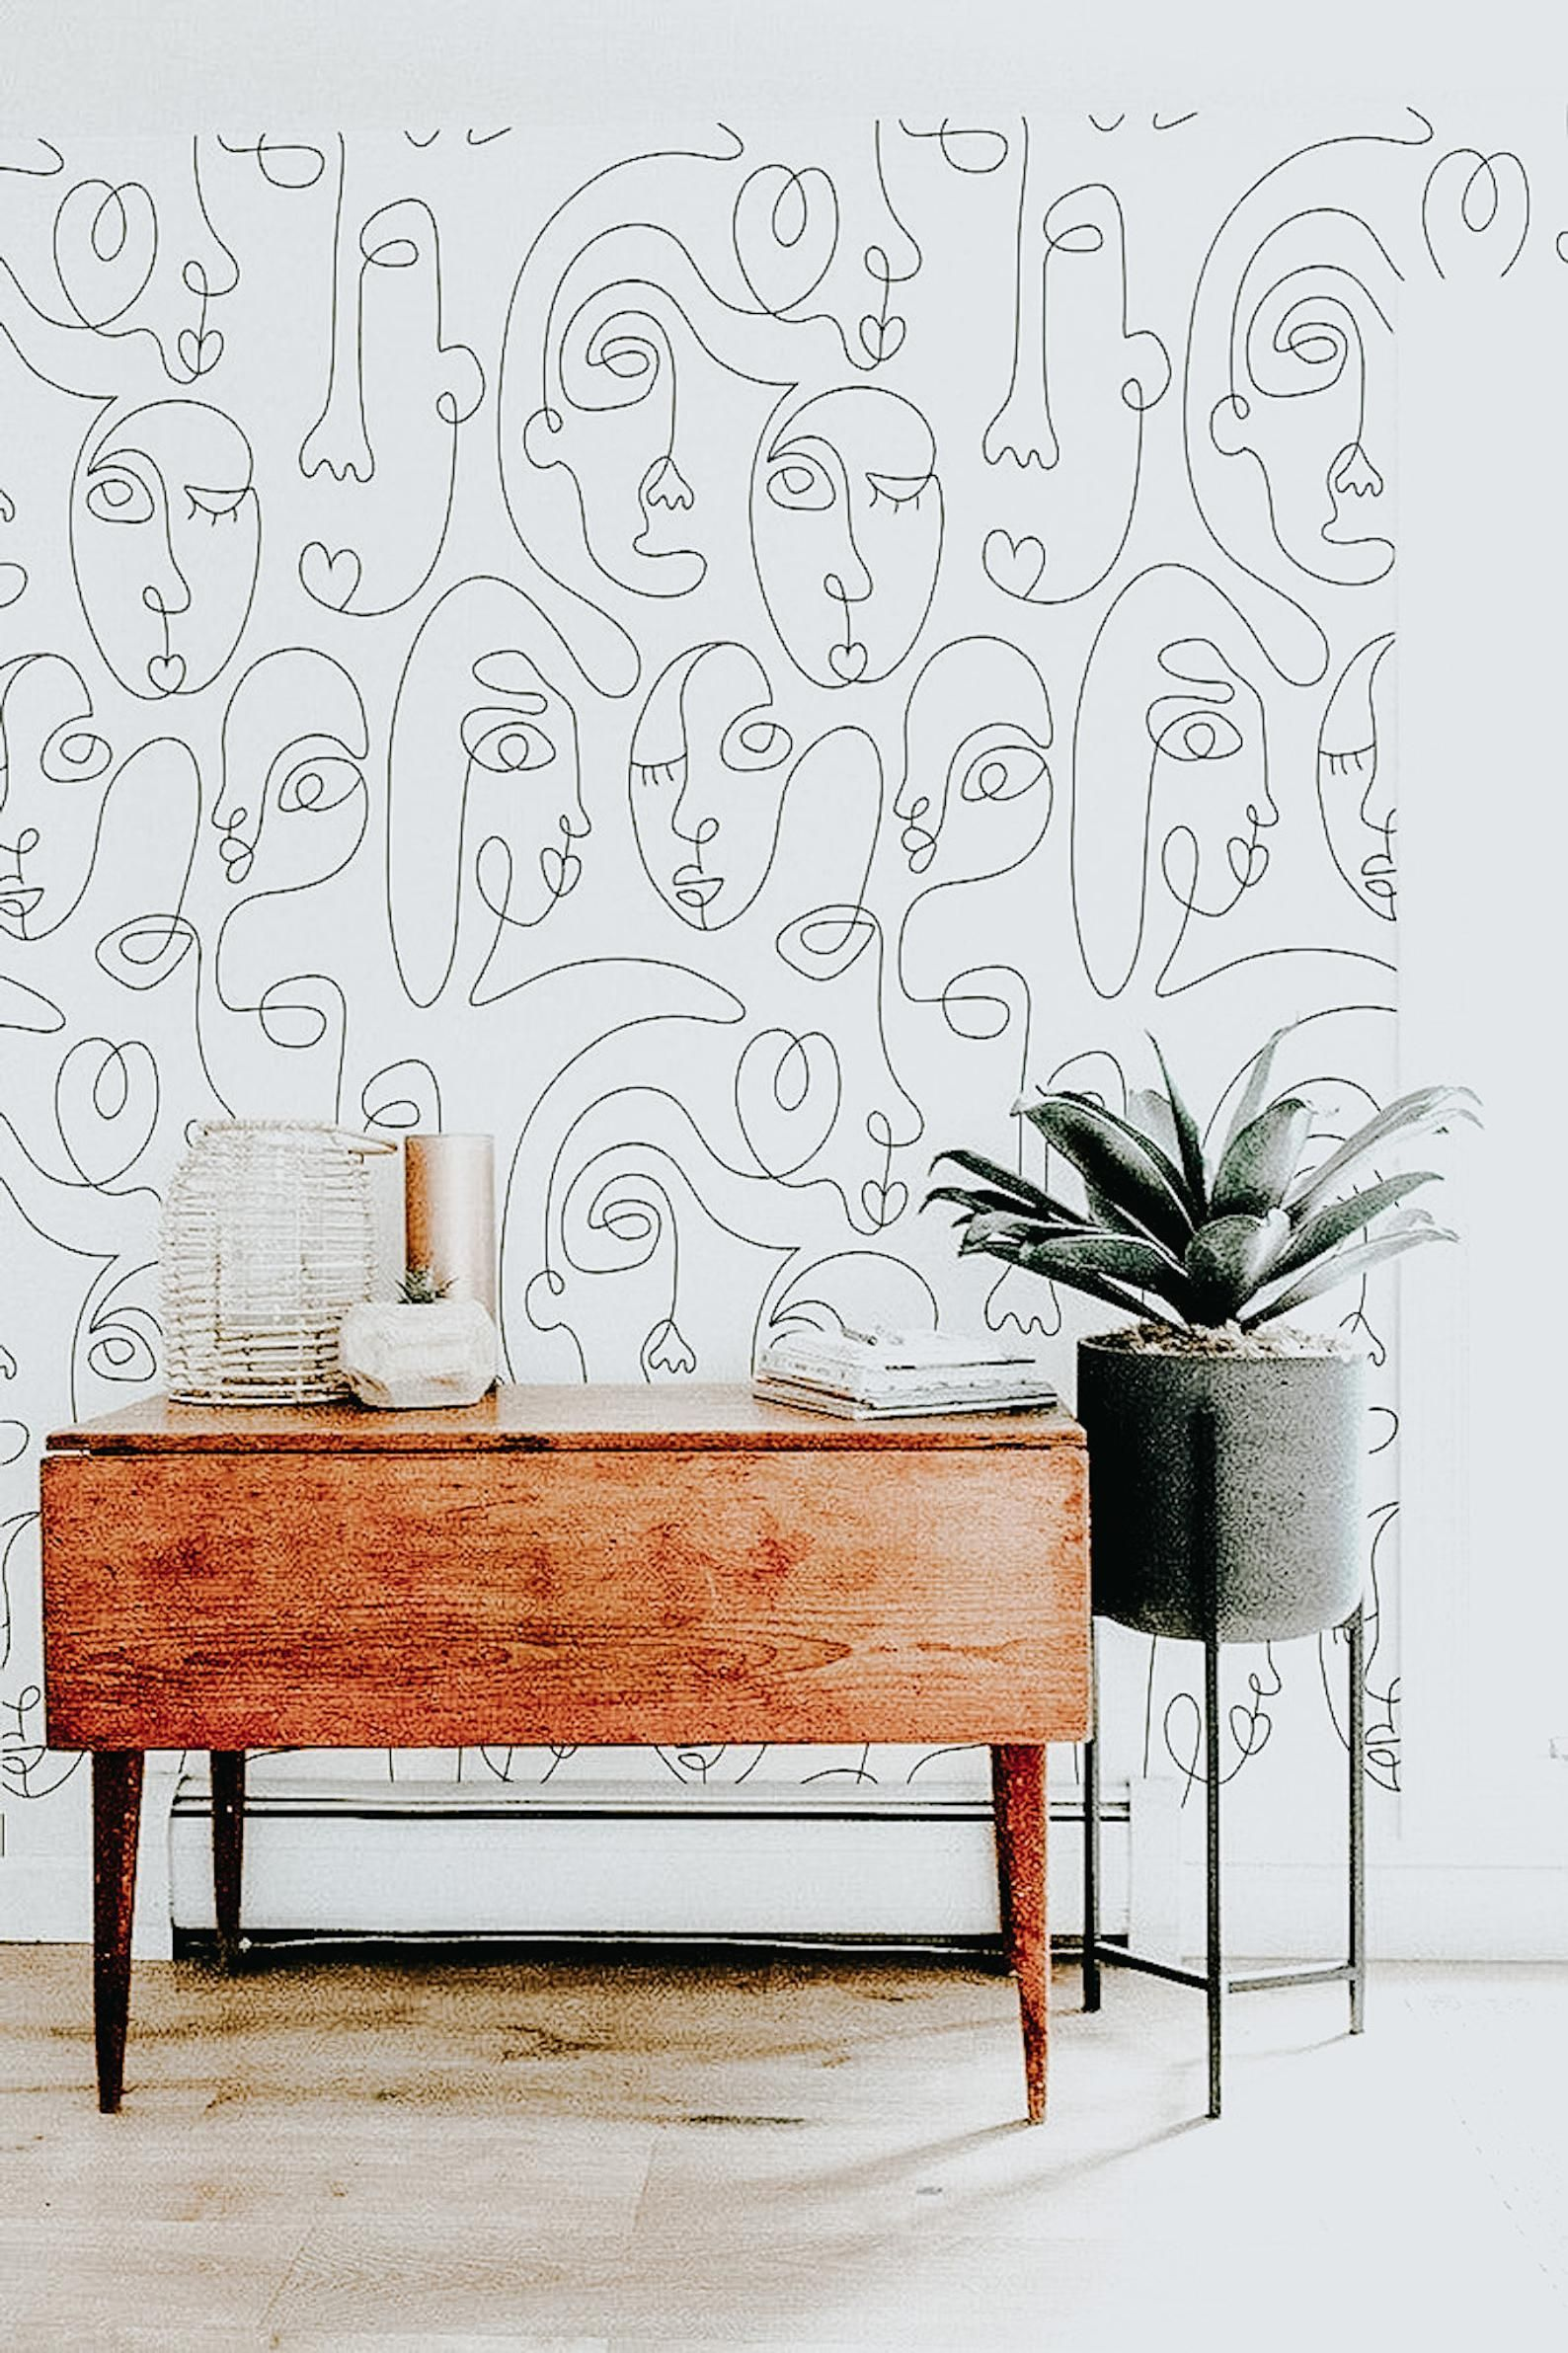 One Line Drawing Peel and Stick Wallpaper   Abstra